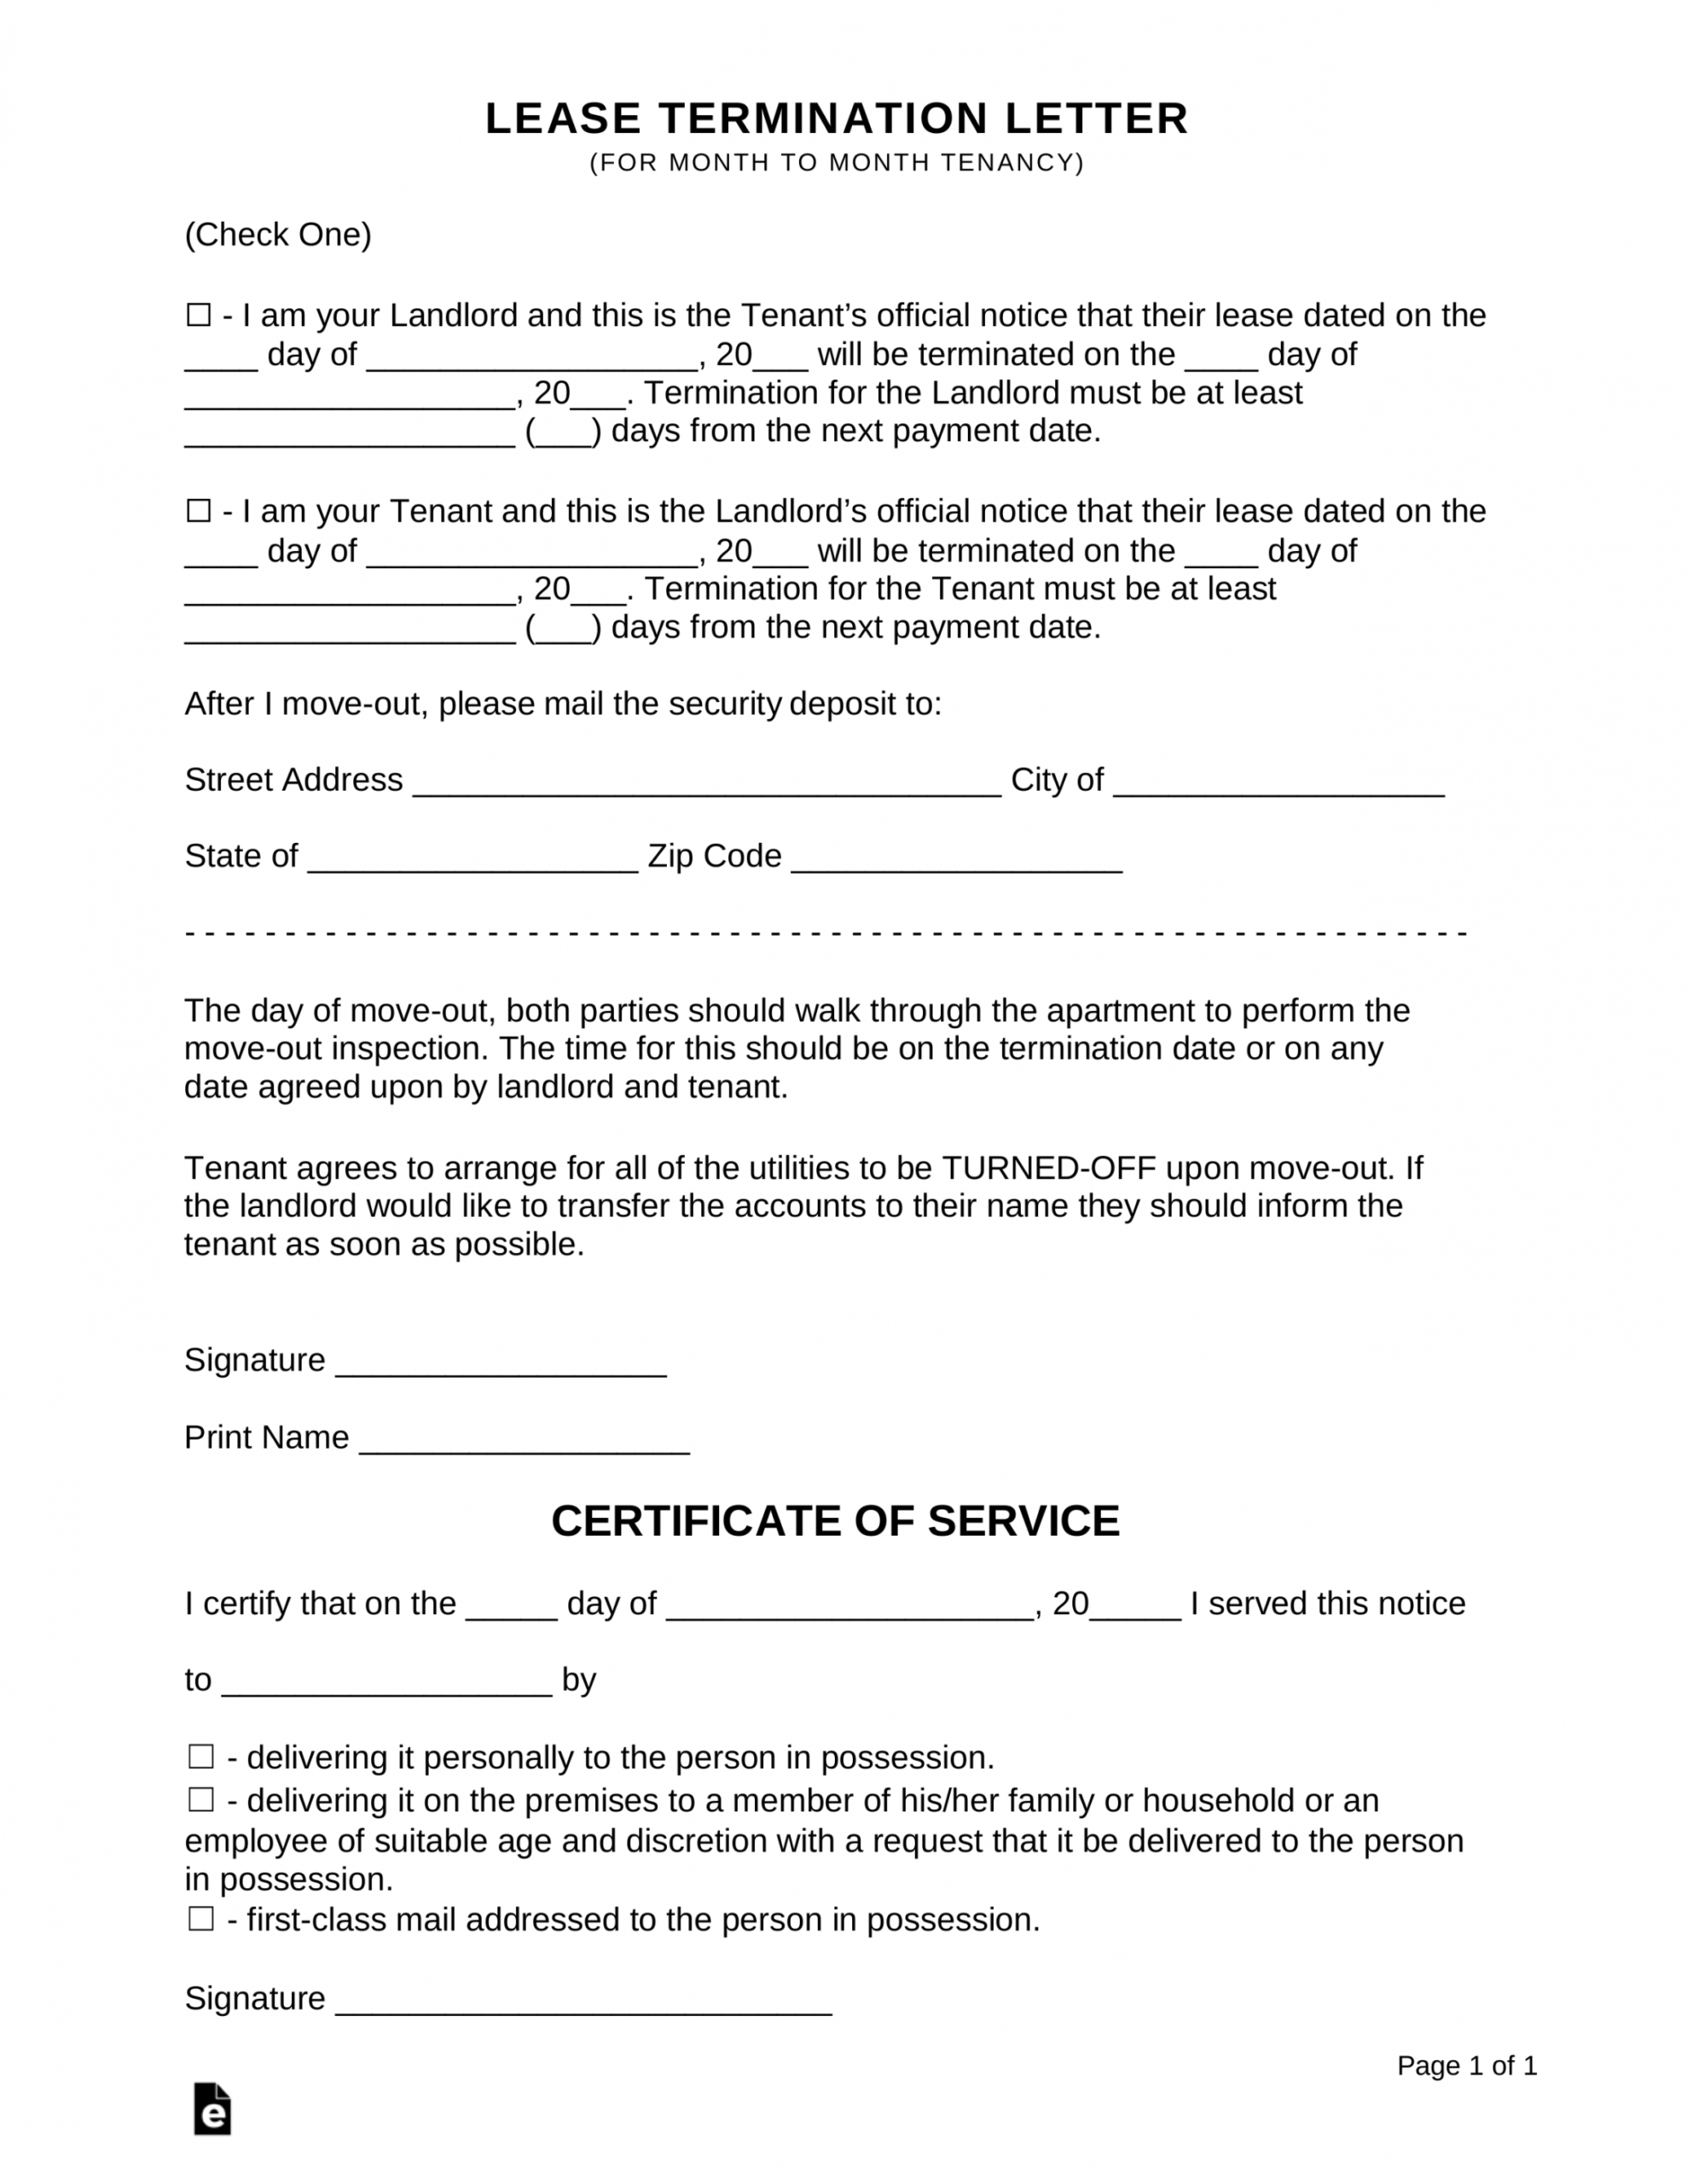 lease termination letters  30day notice to quit for cancellation of lease agreement template example